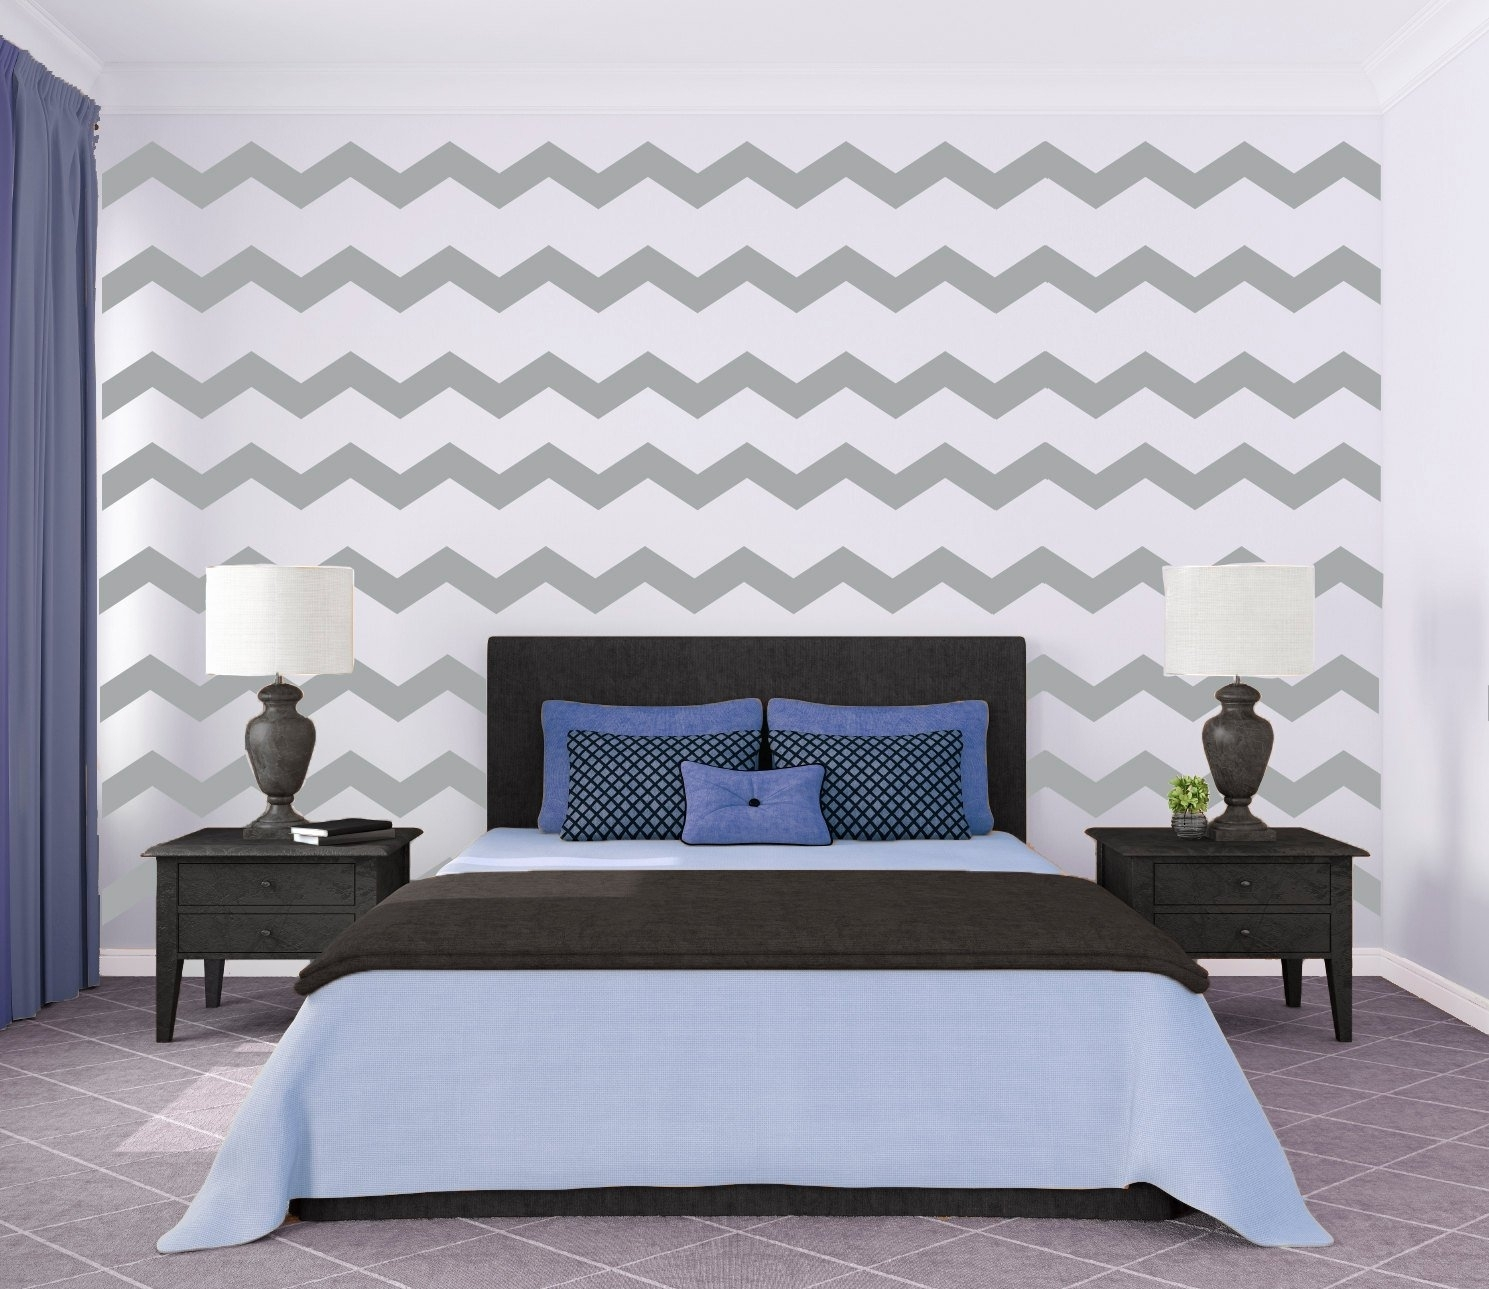 Chevron Wall Pattern Large Wall Decal Custom Vinyl Art, Chevron Wall within Chevron Wall Art (Image 11 of 20)